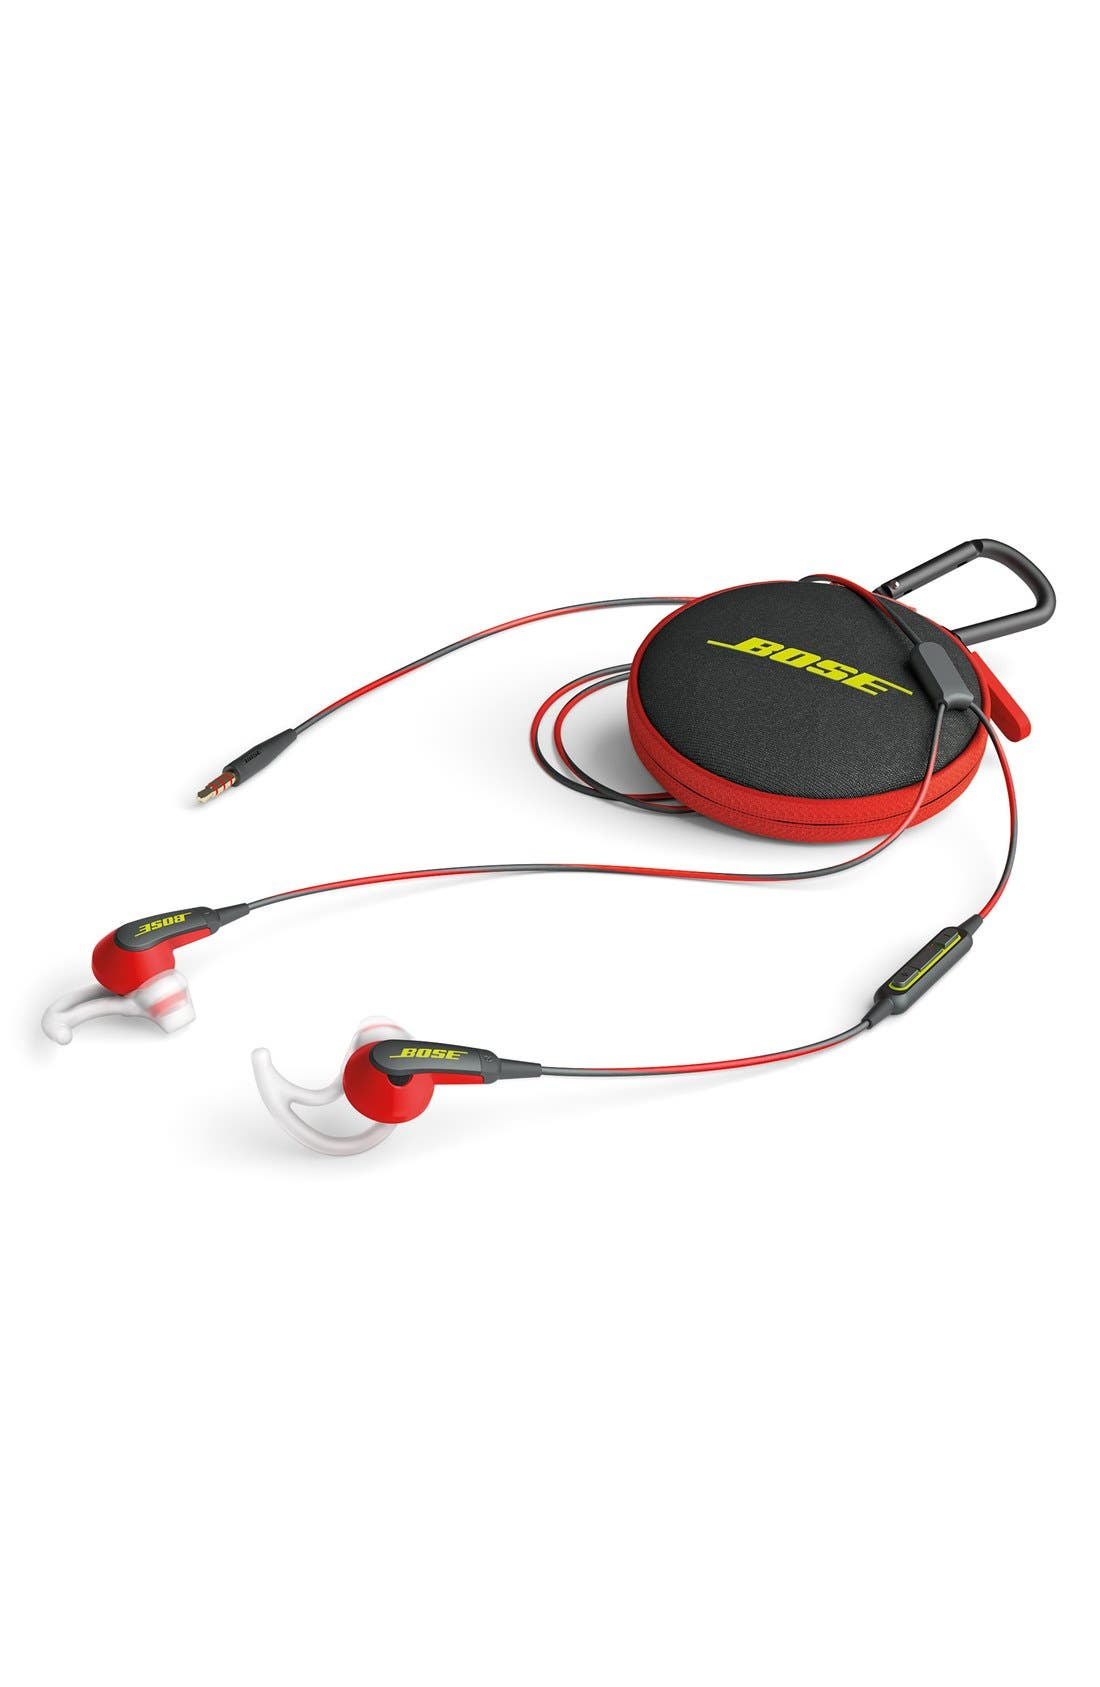 SoundSport<sup>®</sup> In-Ear Headphones,                             Alternate thumbnail 4, color,                             POWER RED